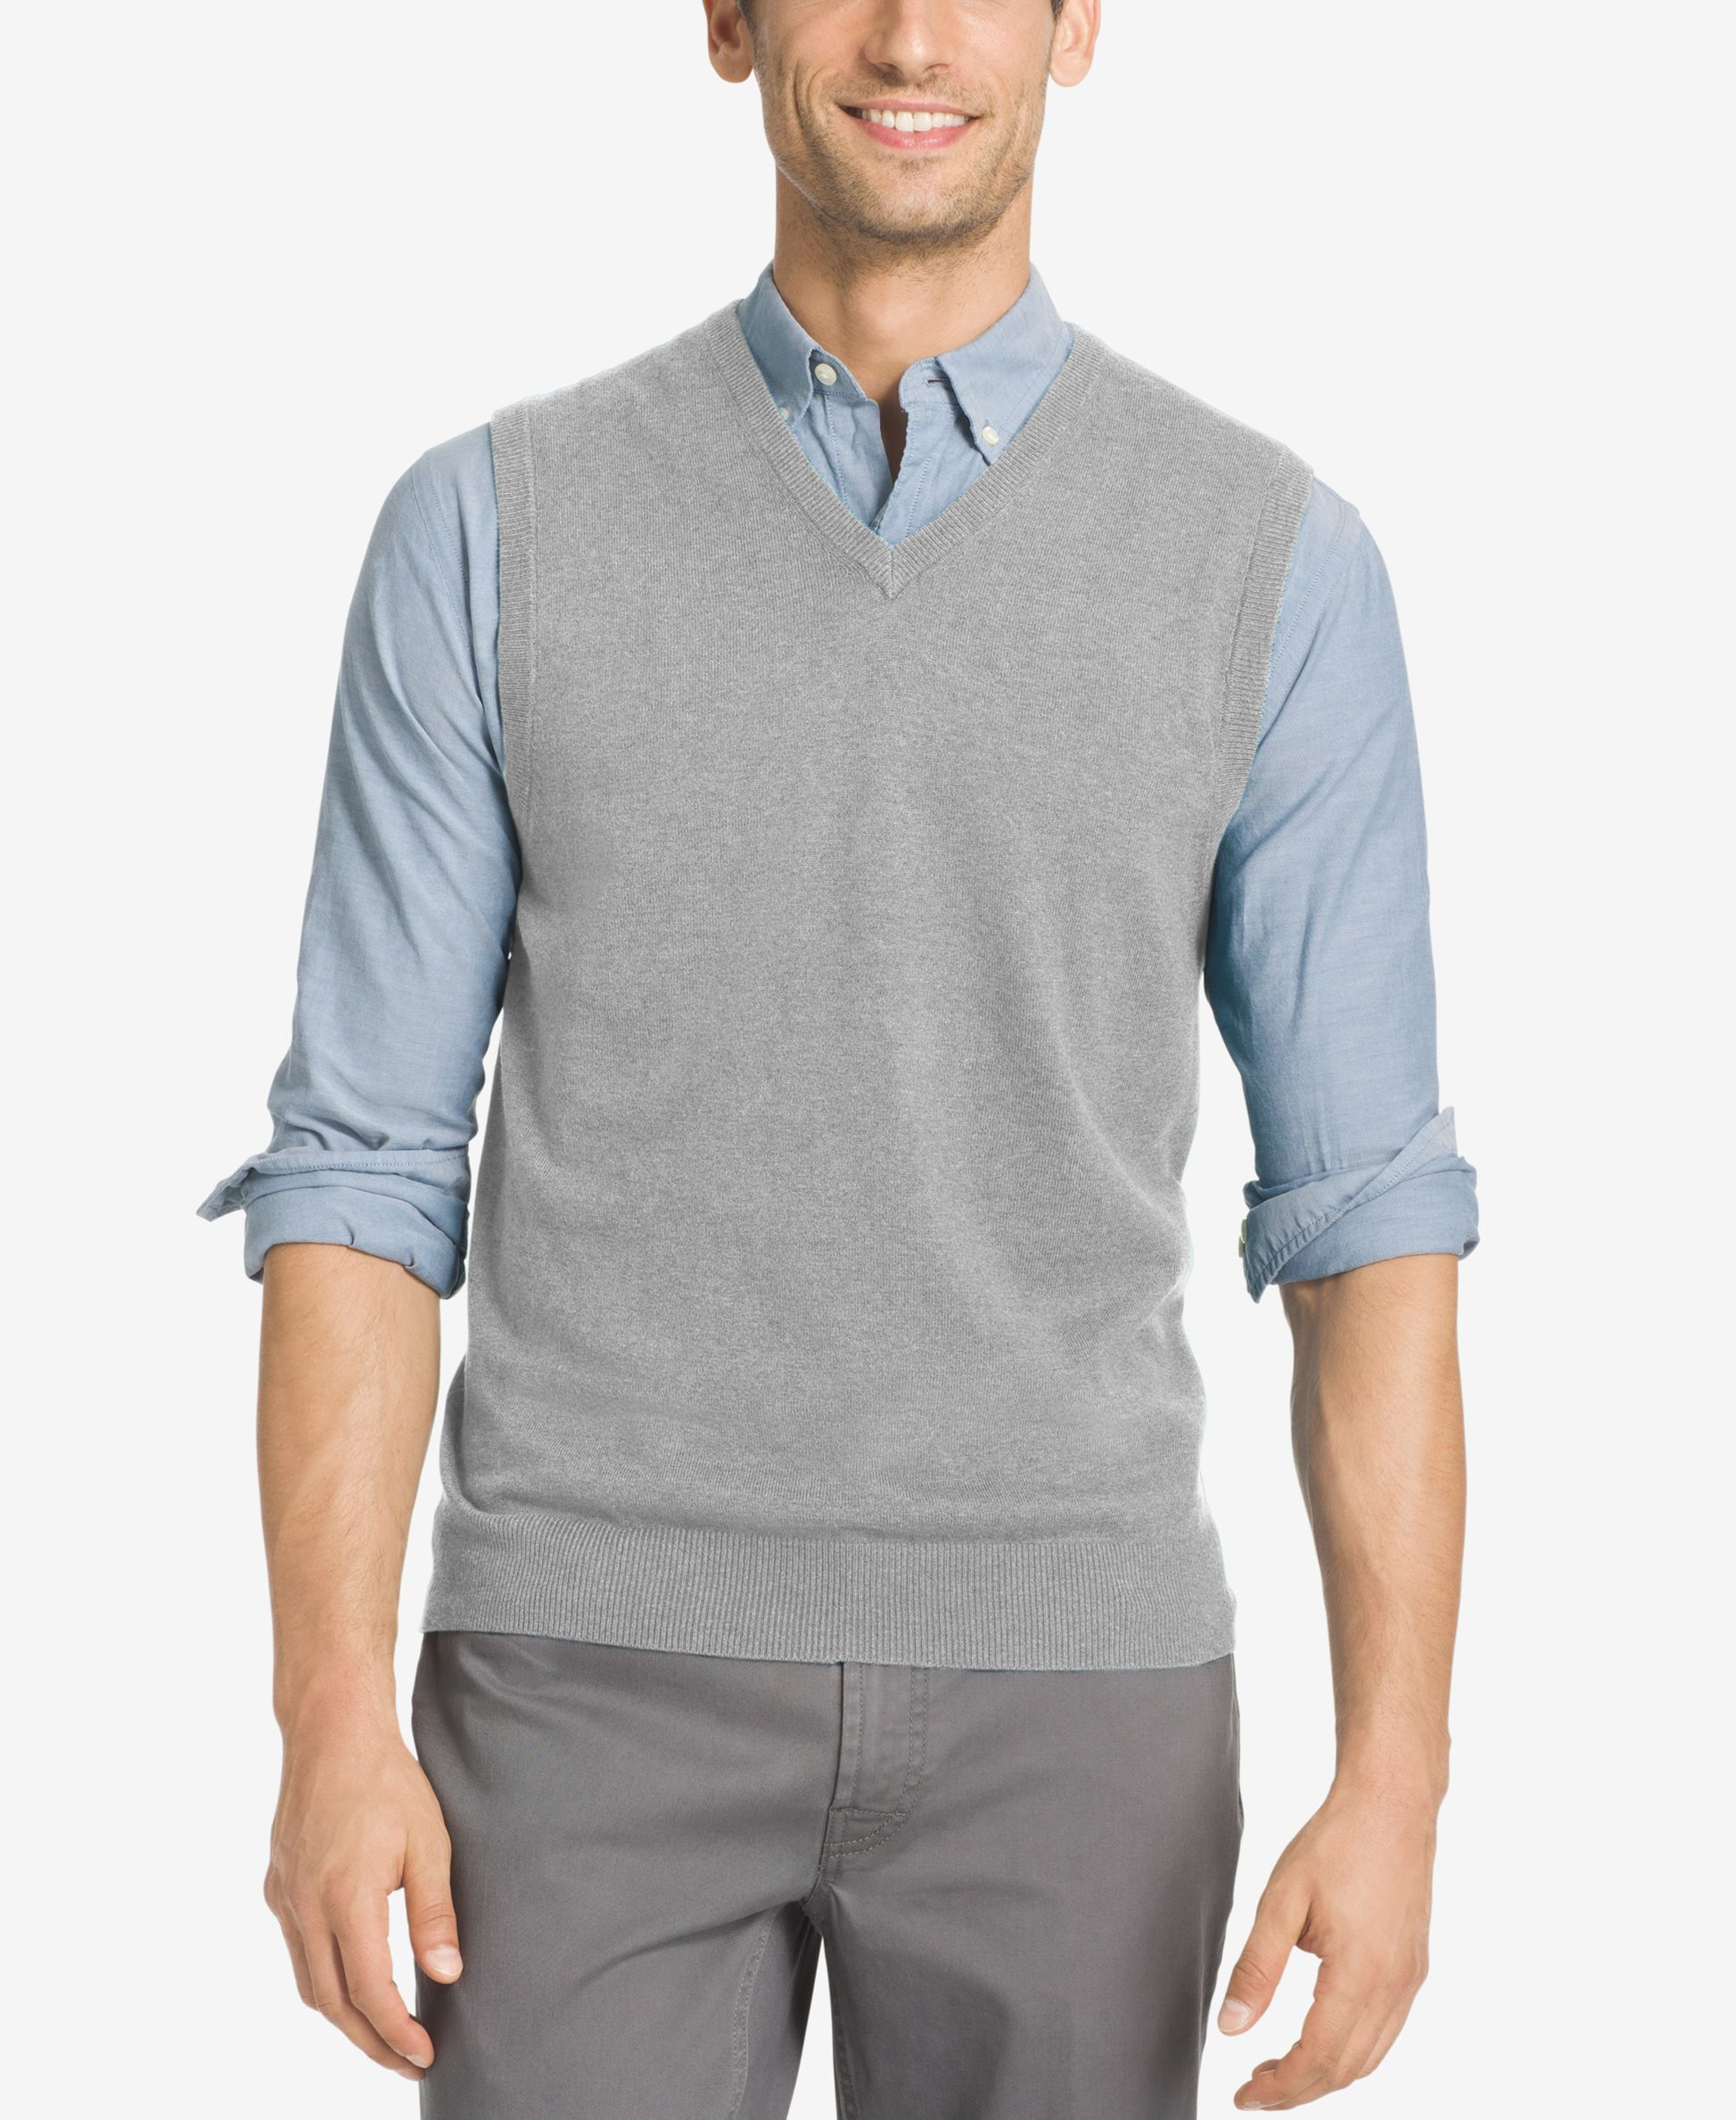 Izod Men's Campus Sweater Vest | Cardigans For Men | Pinterest